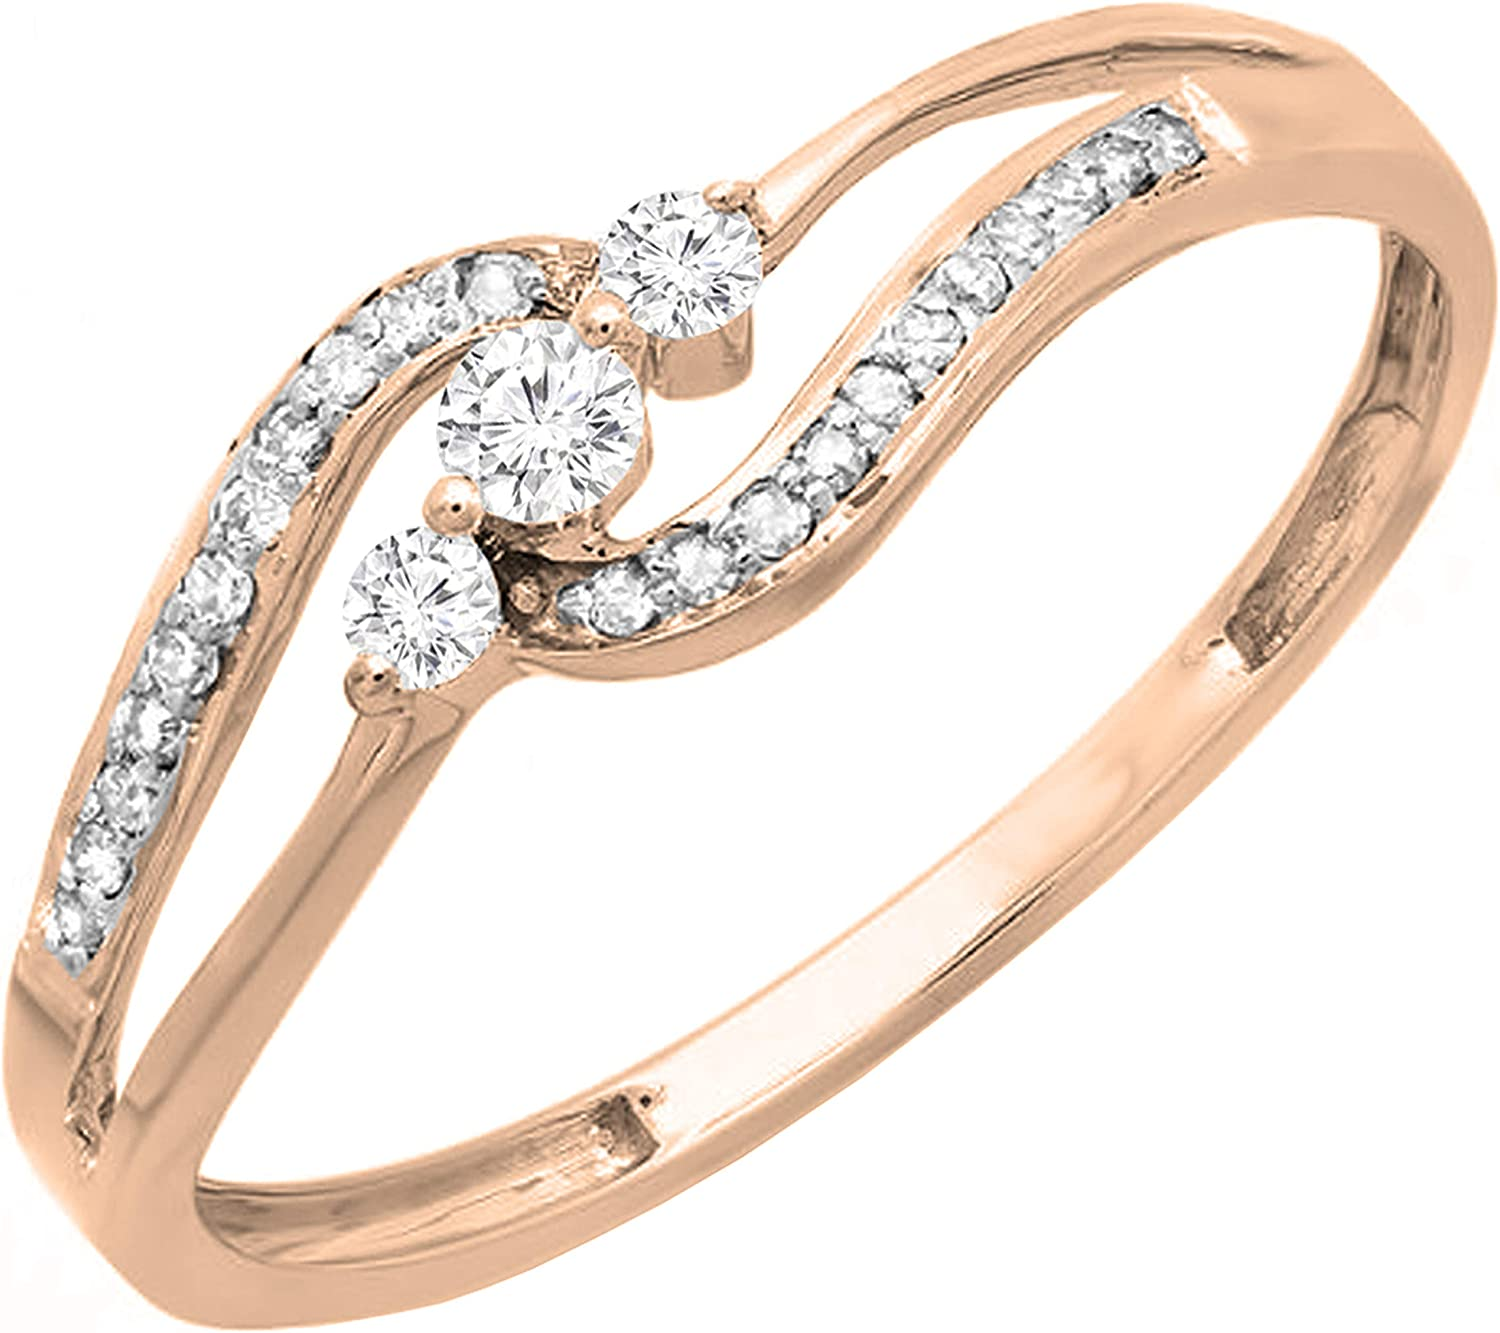 Dazzlingrock Collection 0.20 Carat (ctw) Round White Diamond Ladies 3 stone Engagement Bridal Promise Ring 1/5 CT, 10K Gold